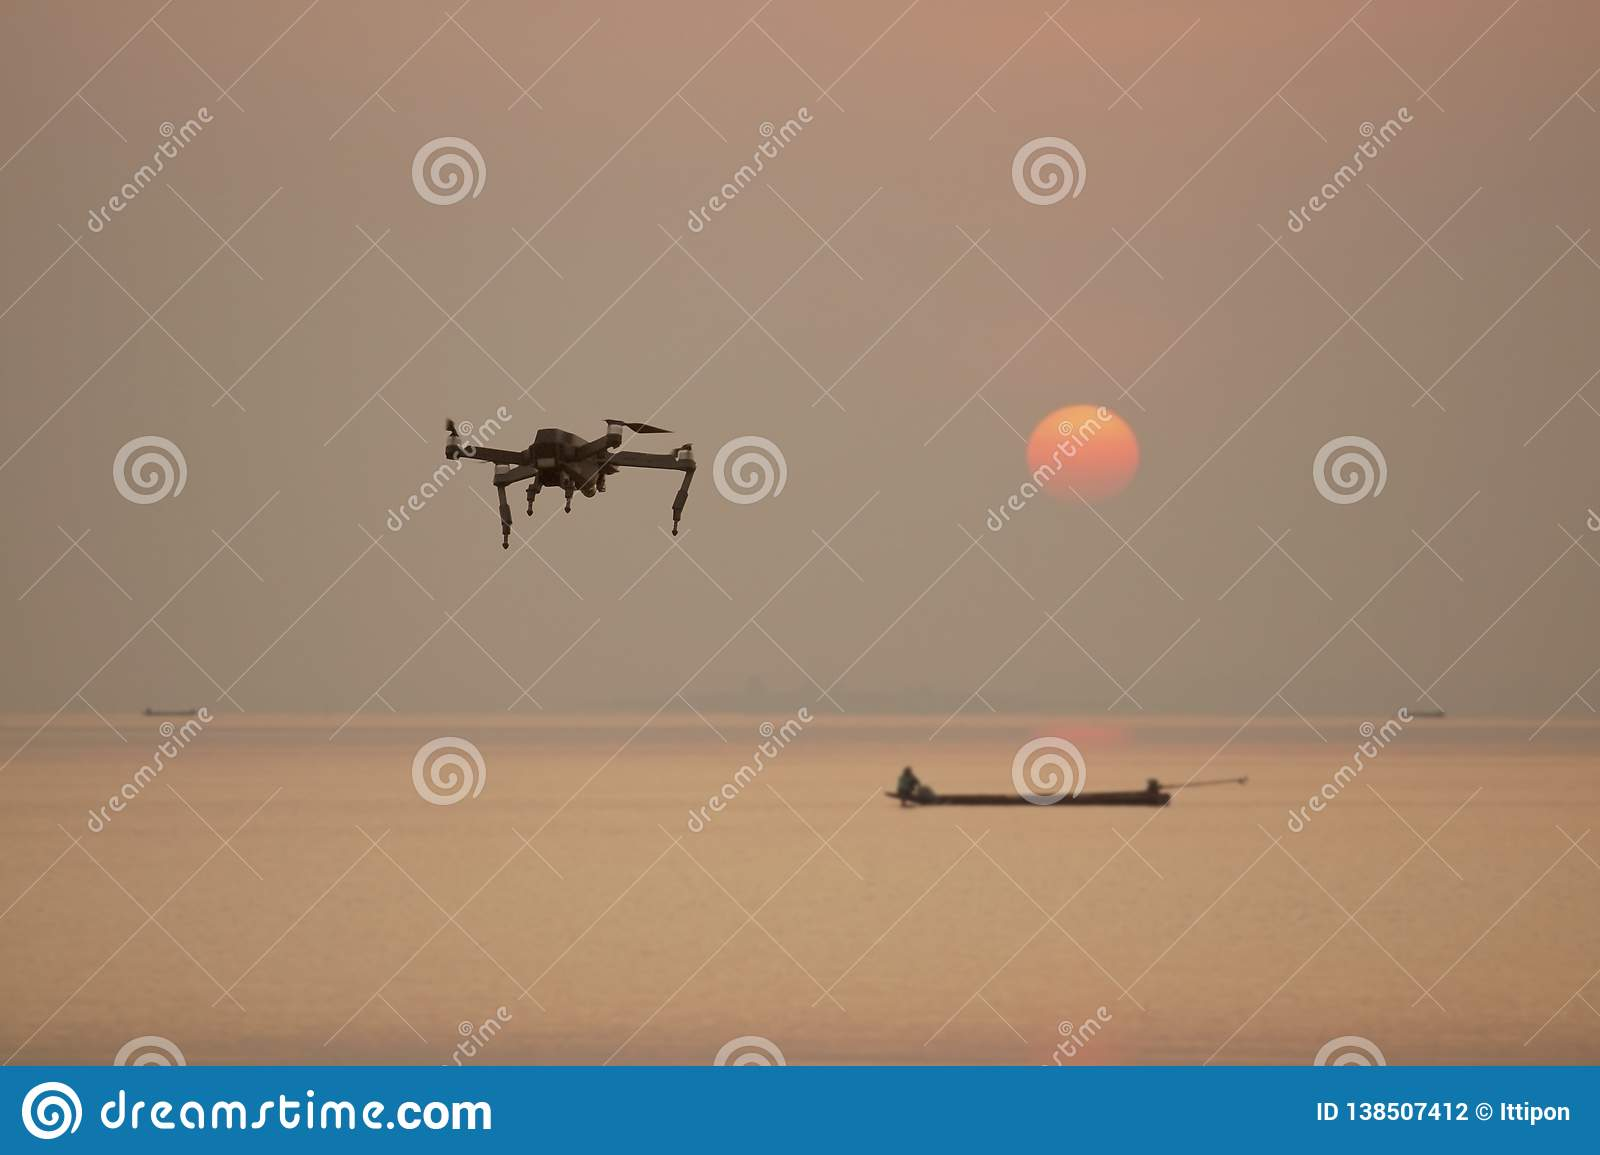 Flying drone on the sea with sunset